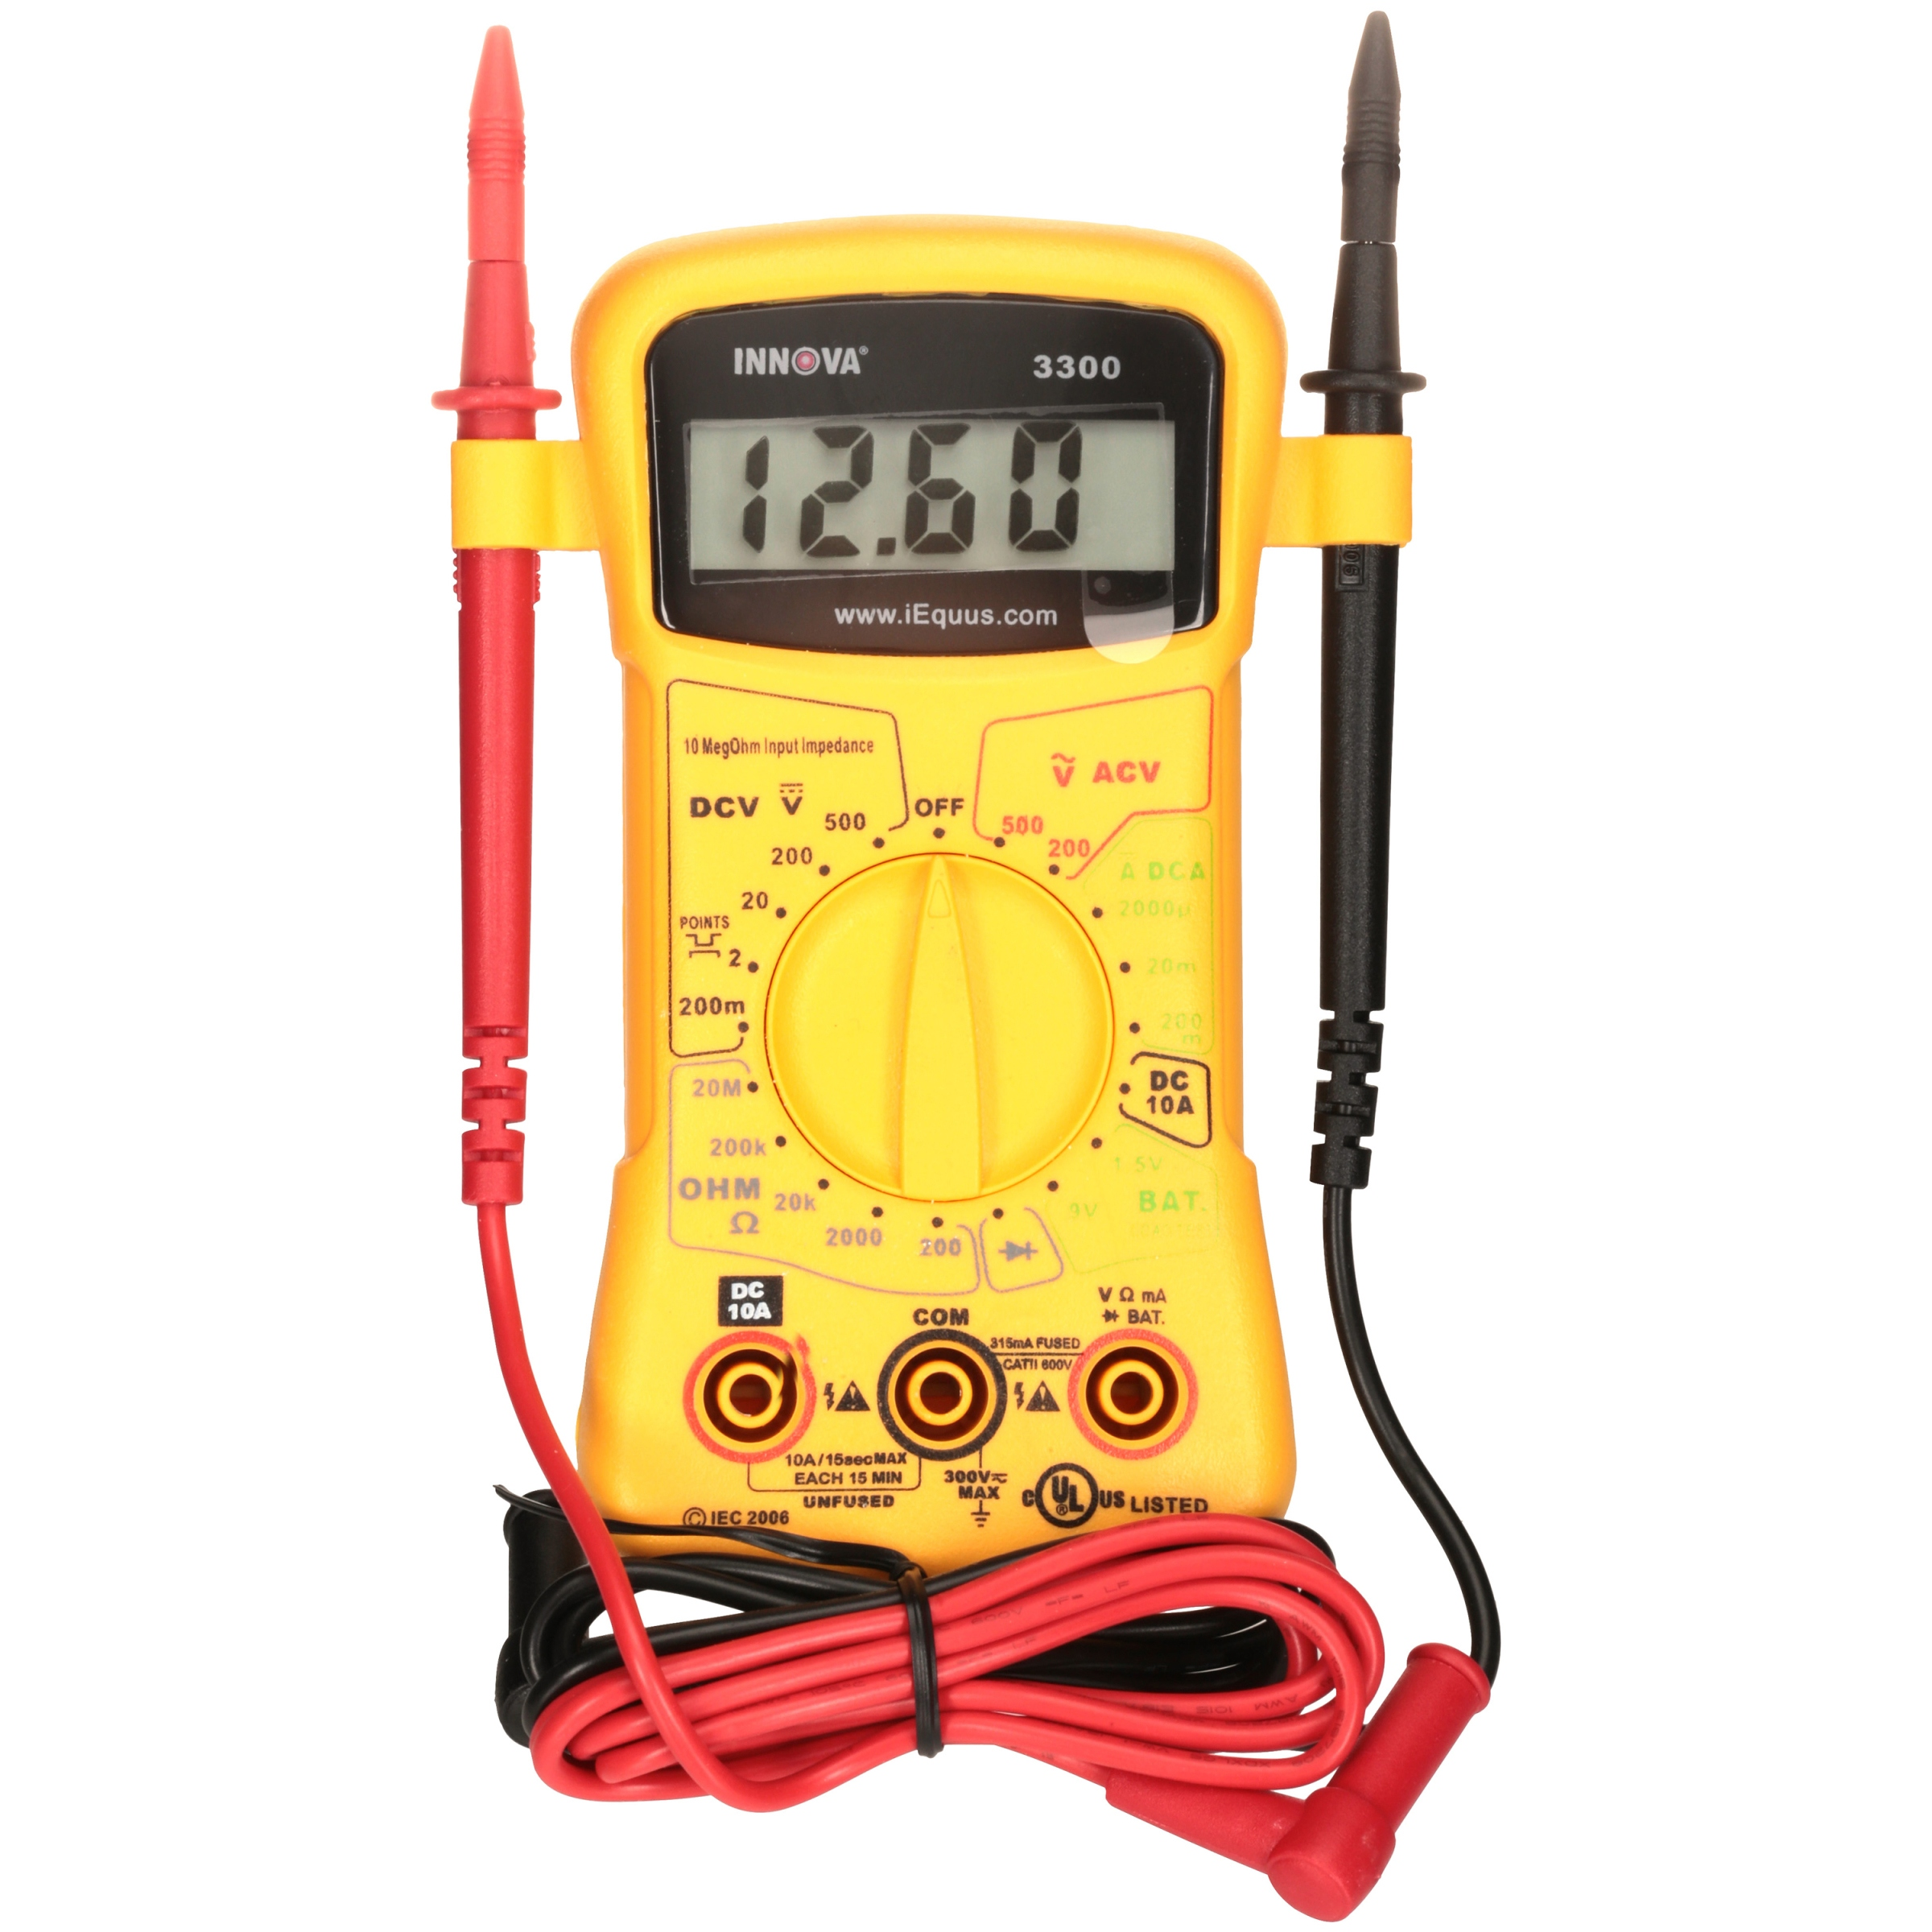 Innova® Equus 3300 Digital Multimeter™ Reader